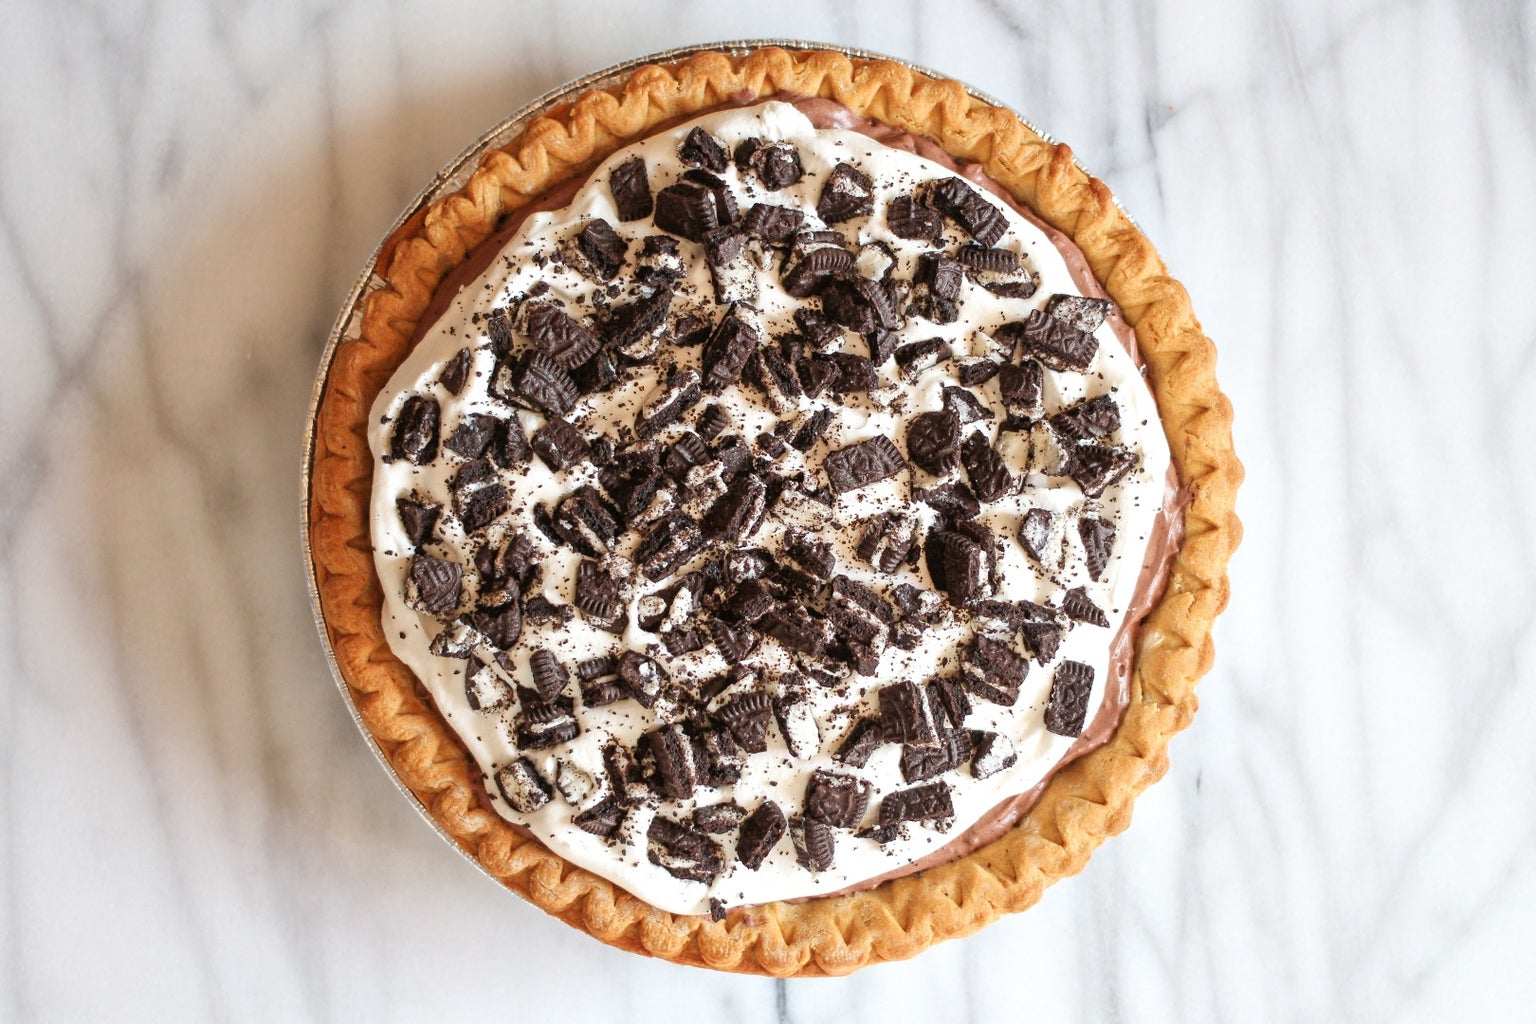 Top the Pie With Cool Whip and Oreos